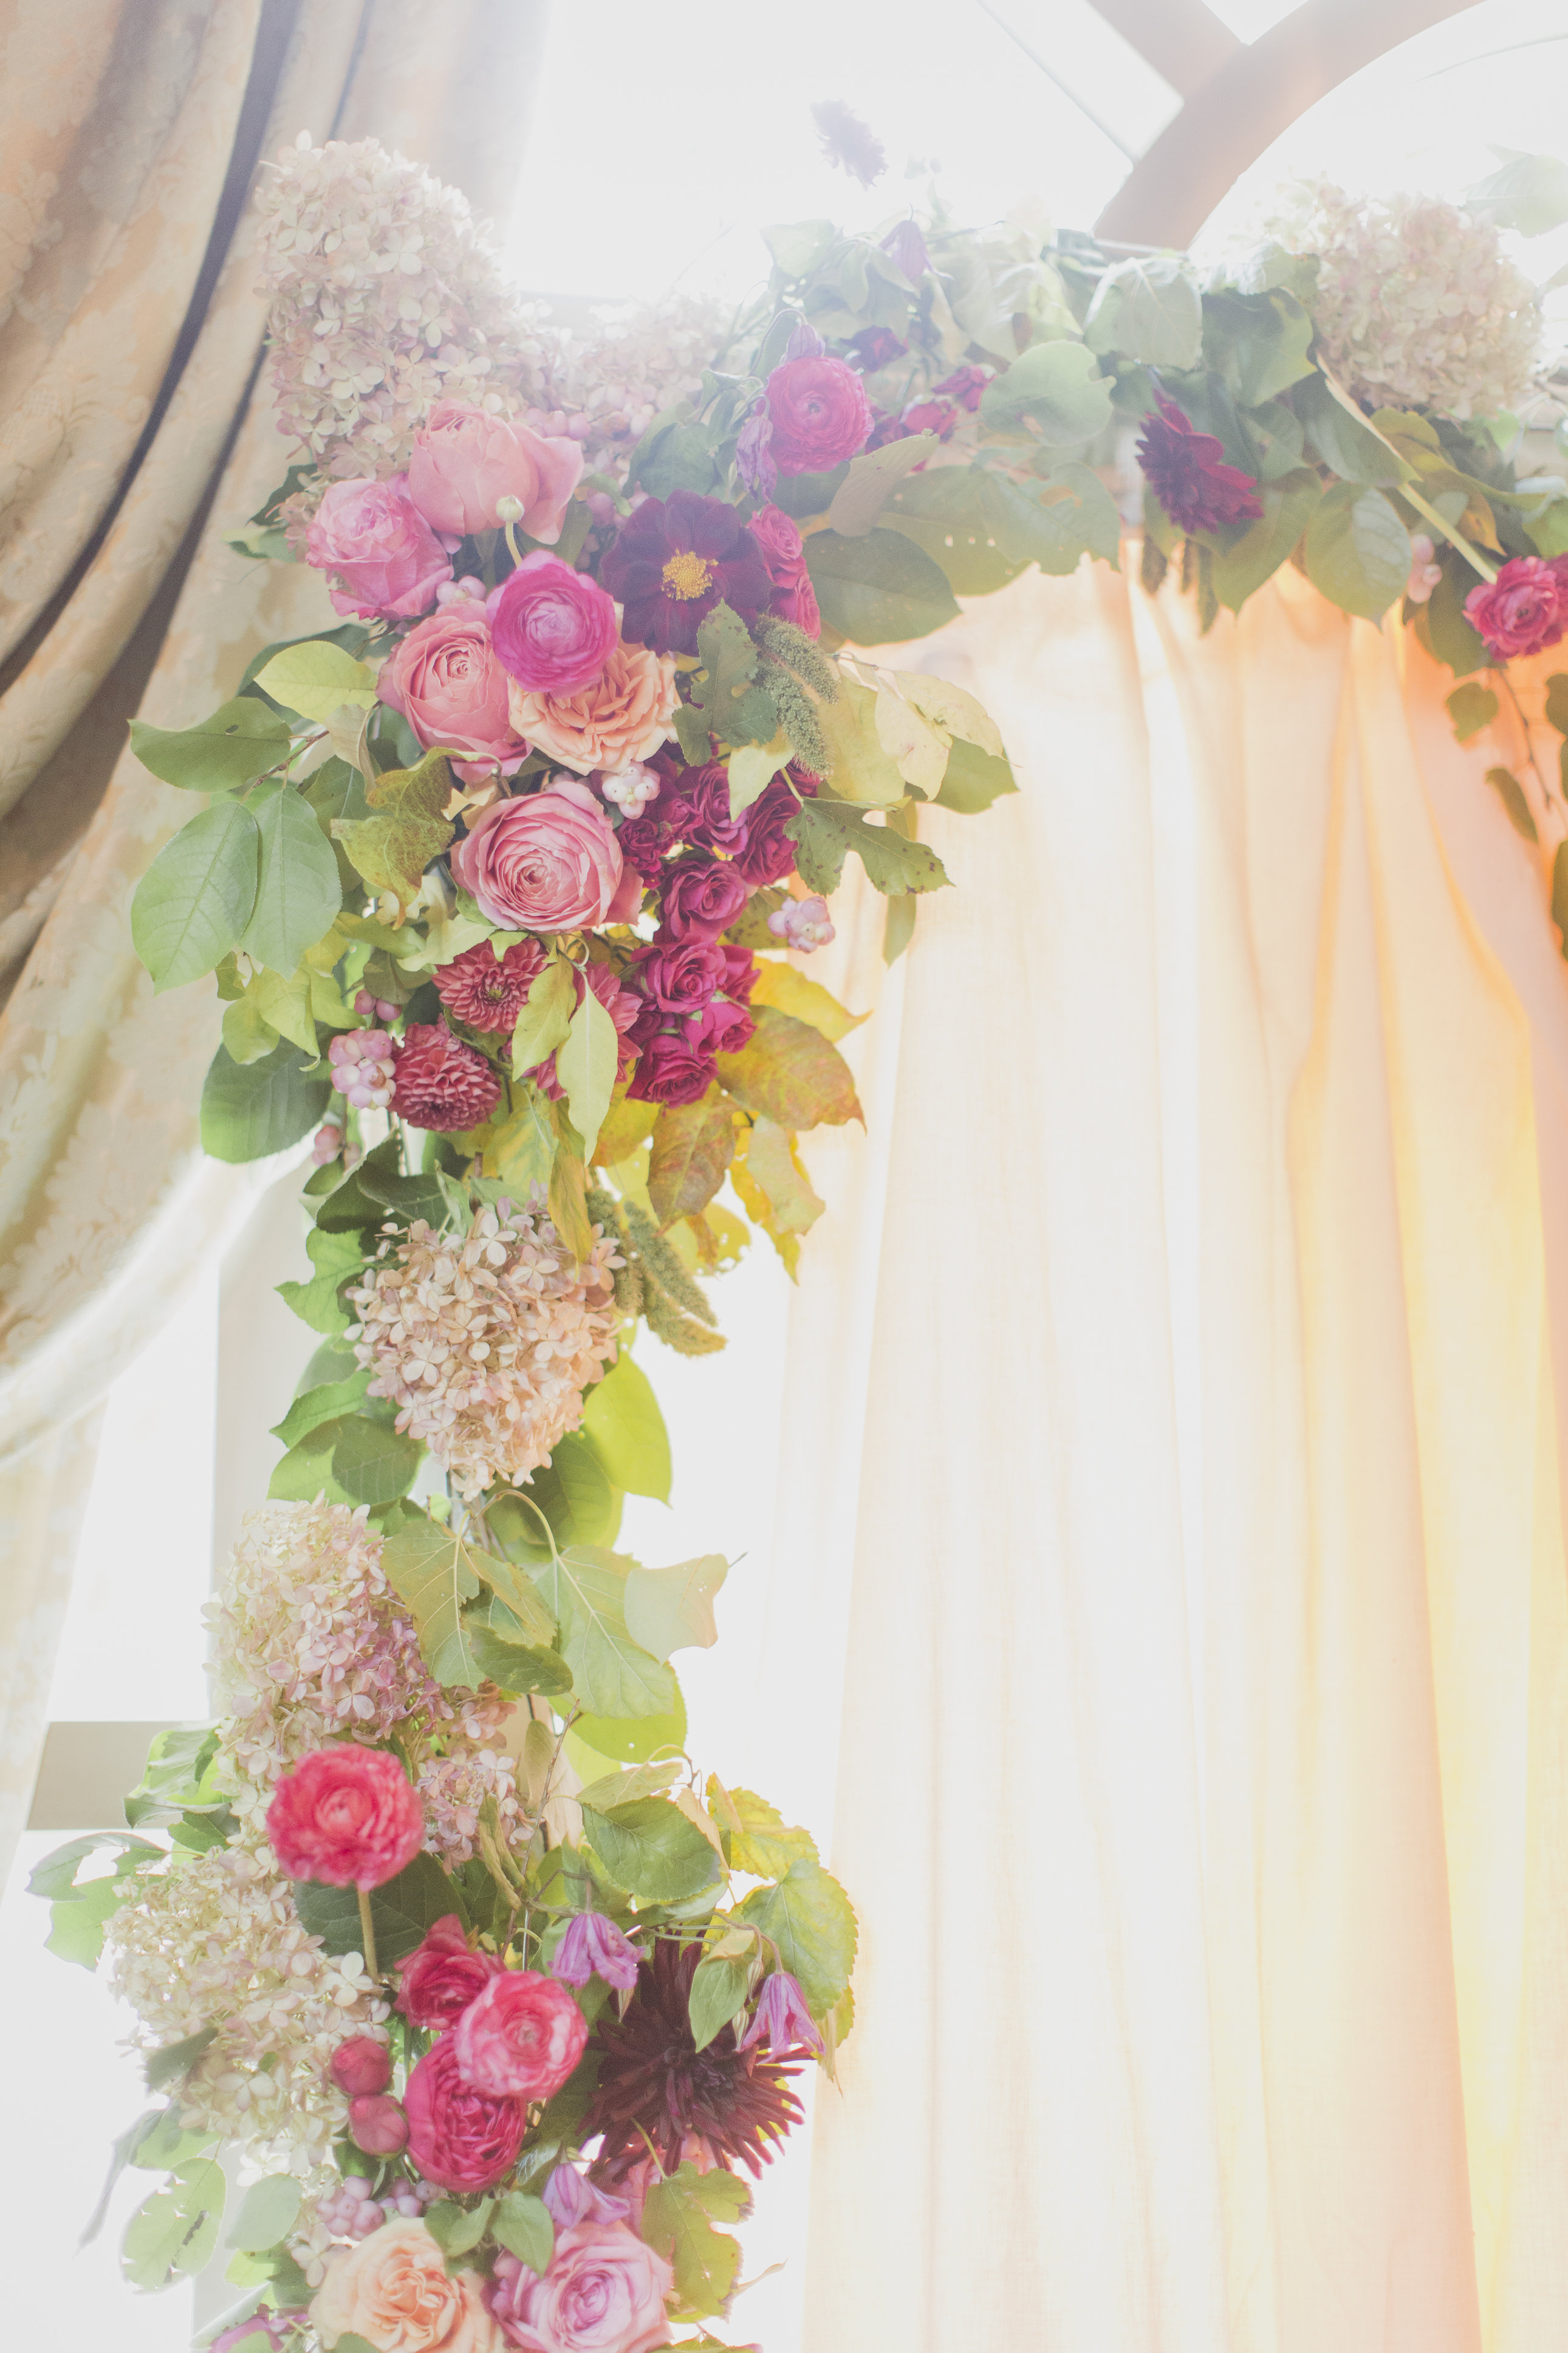 Romantic cranberry and blush floral garland for the wedding ceremony. See more at Rebecca Chan Weddings and Events http://www.rebeccachan.ca